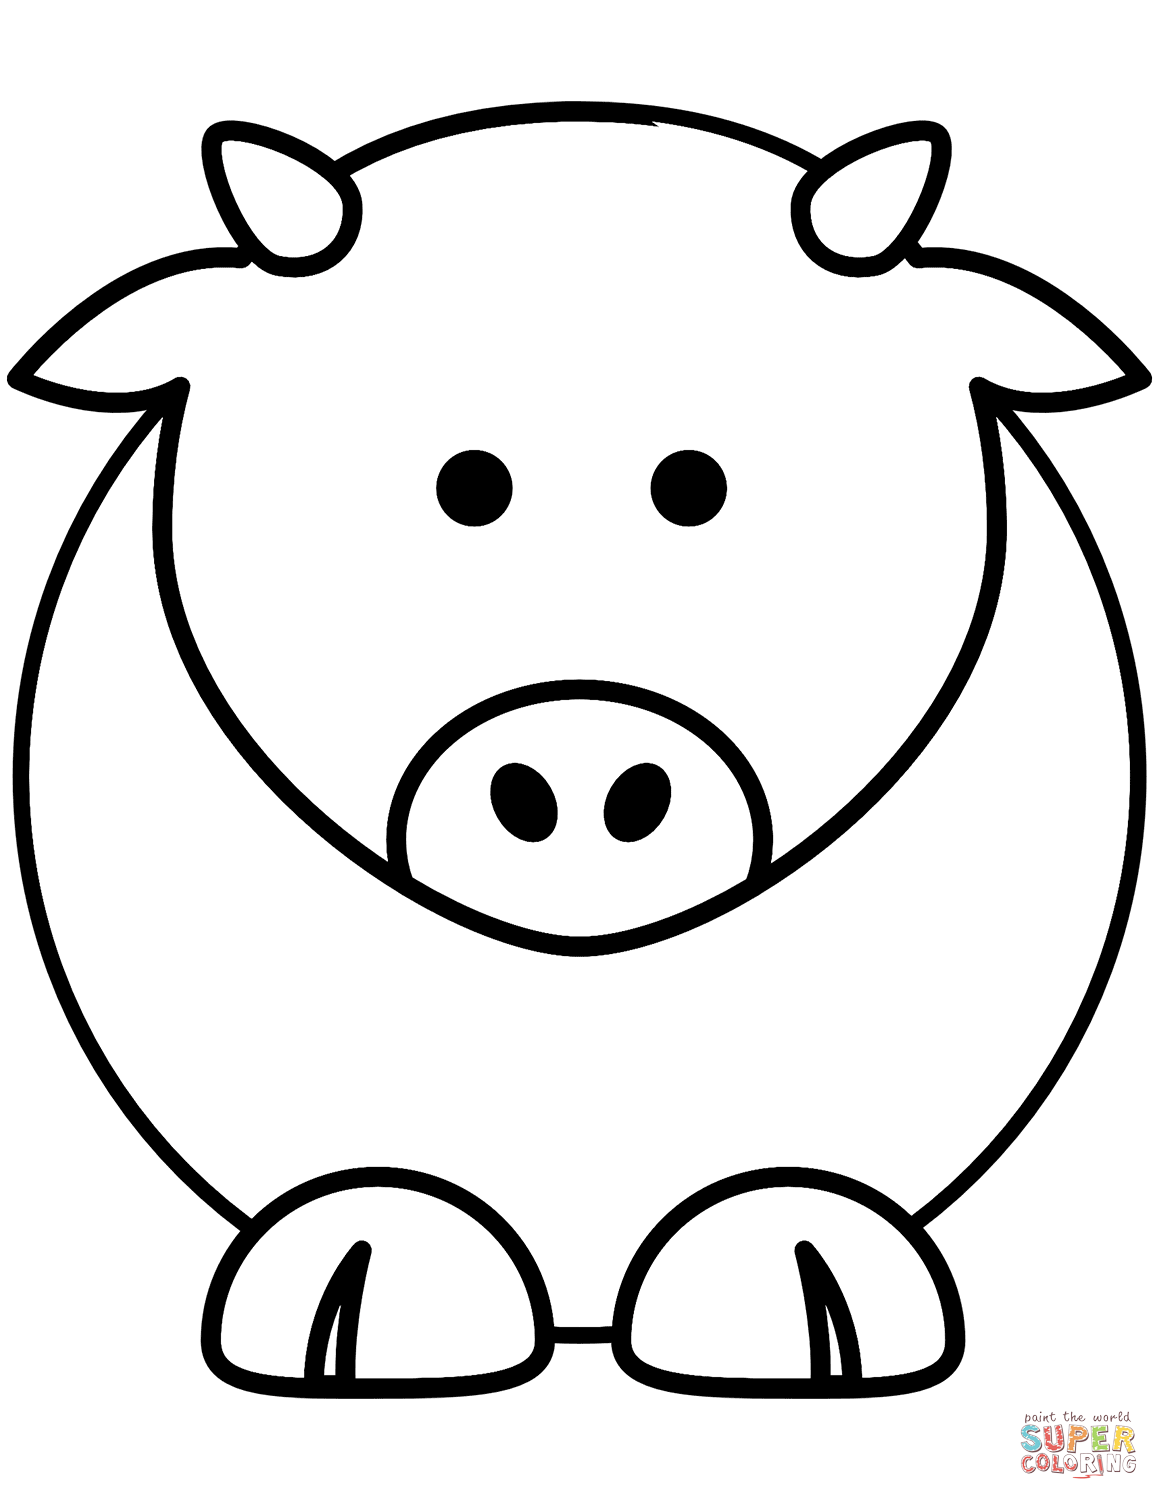 picture of a cow to colour free printable cow coloring pages for kids cool2bkids cow of a picture to colour